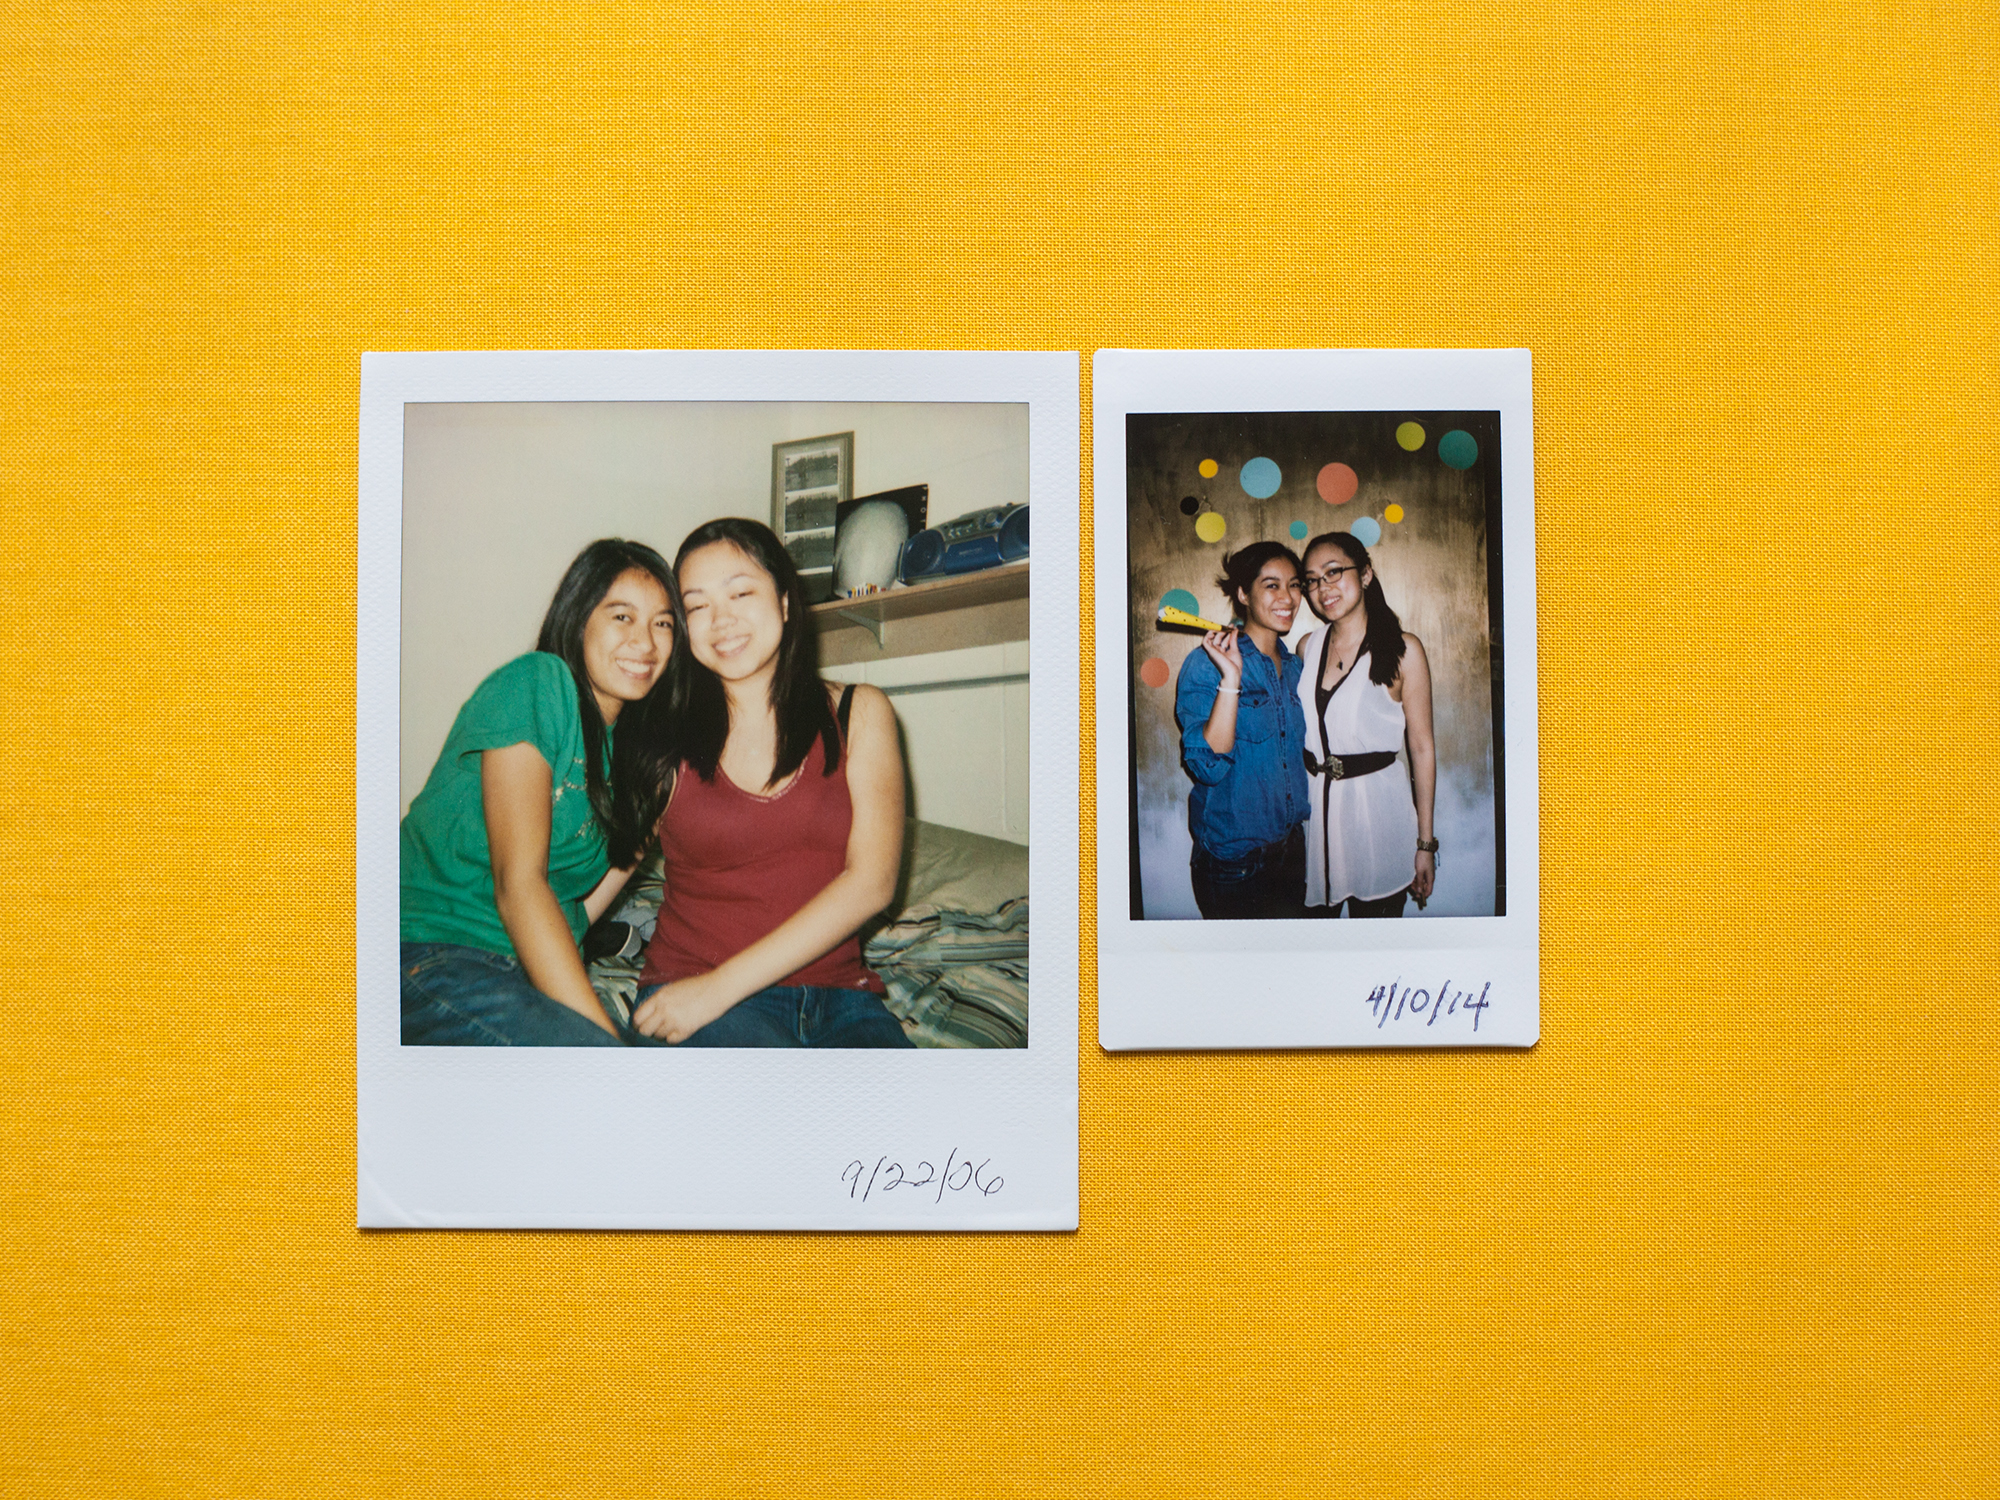 Polaroid on the Left; Instax on the Right